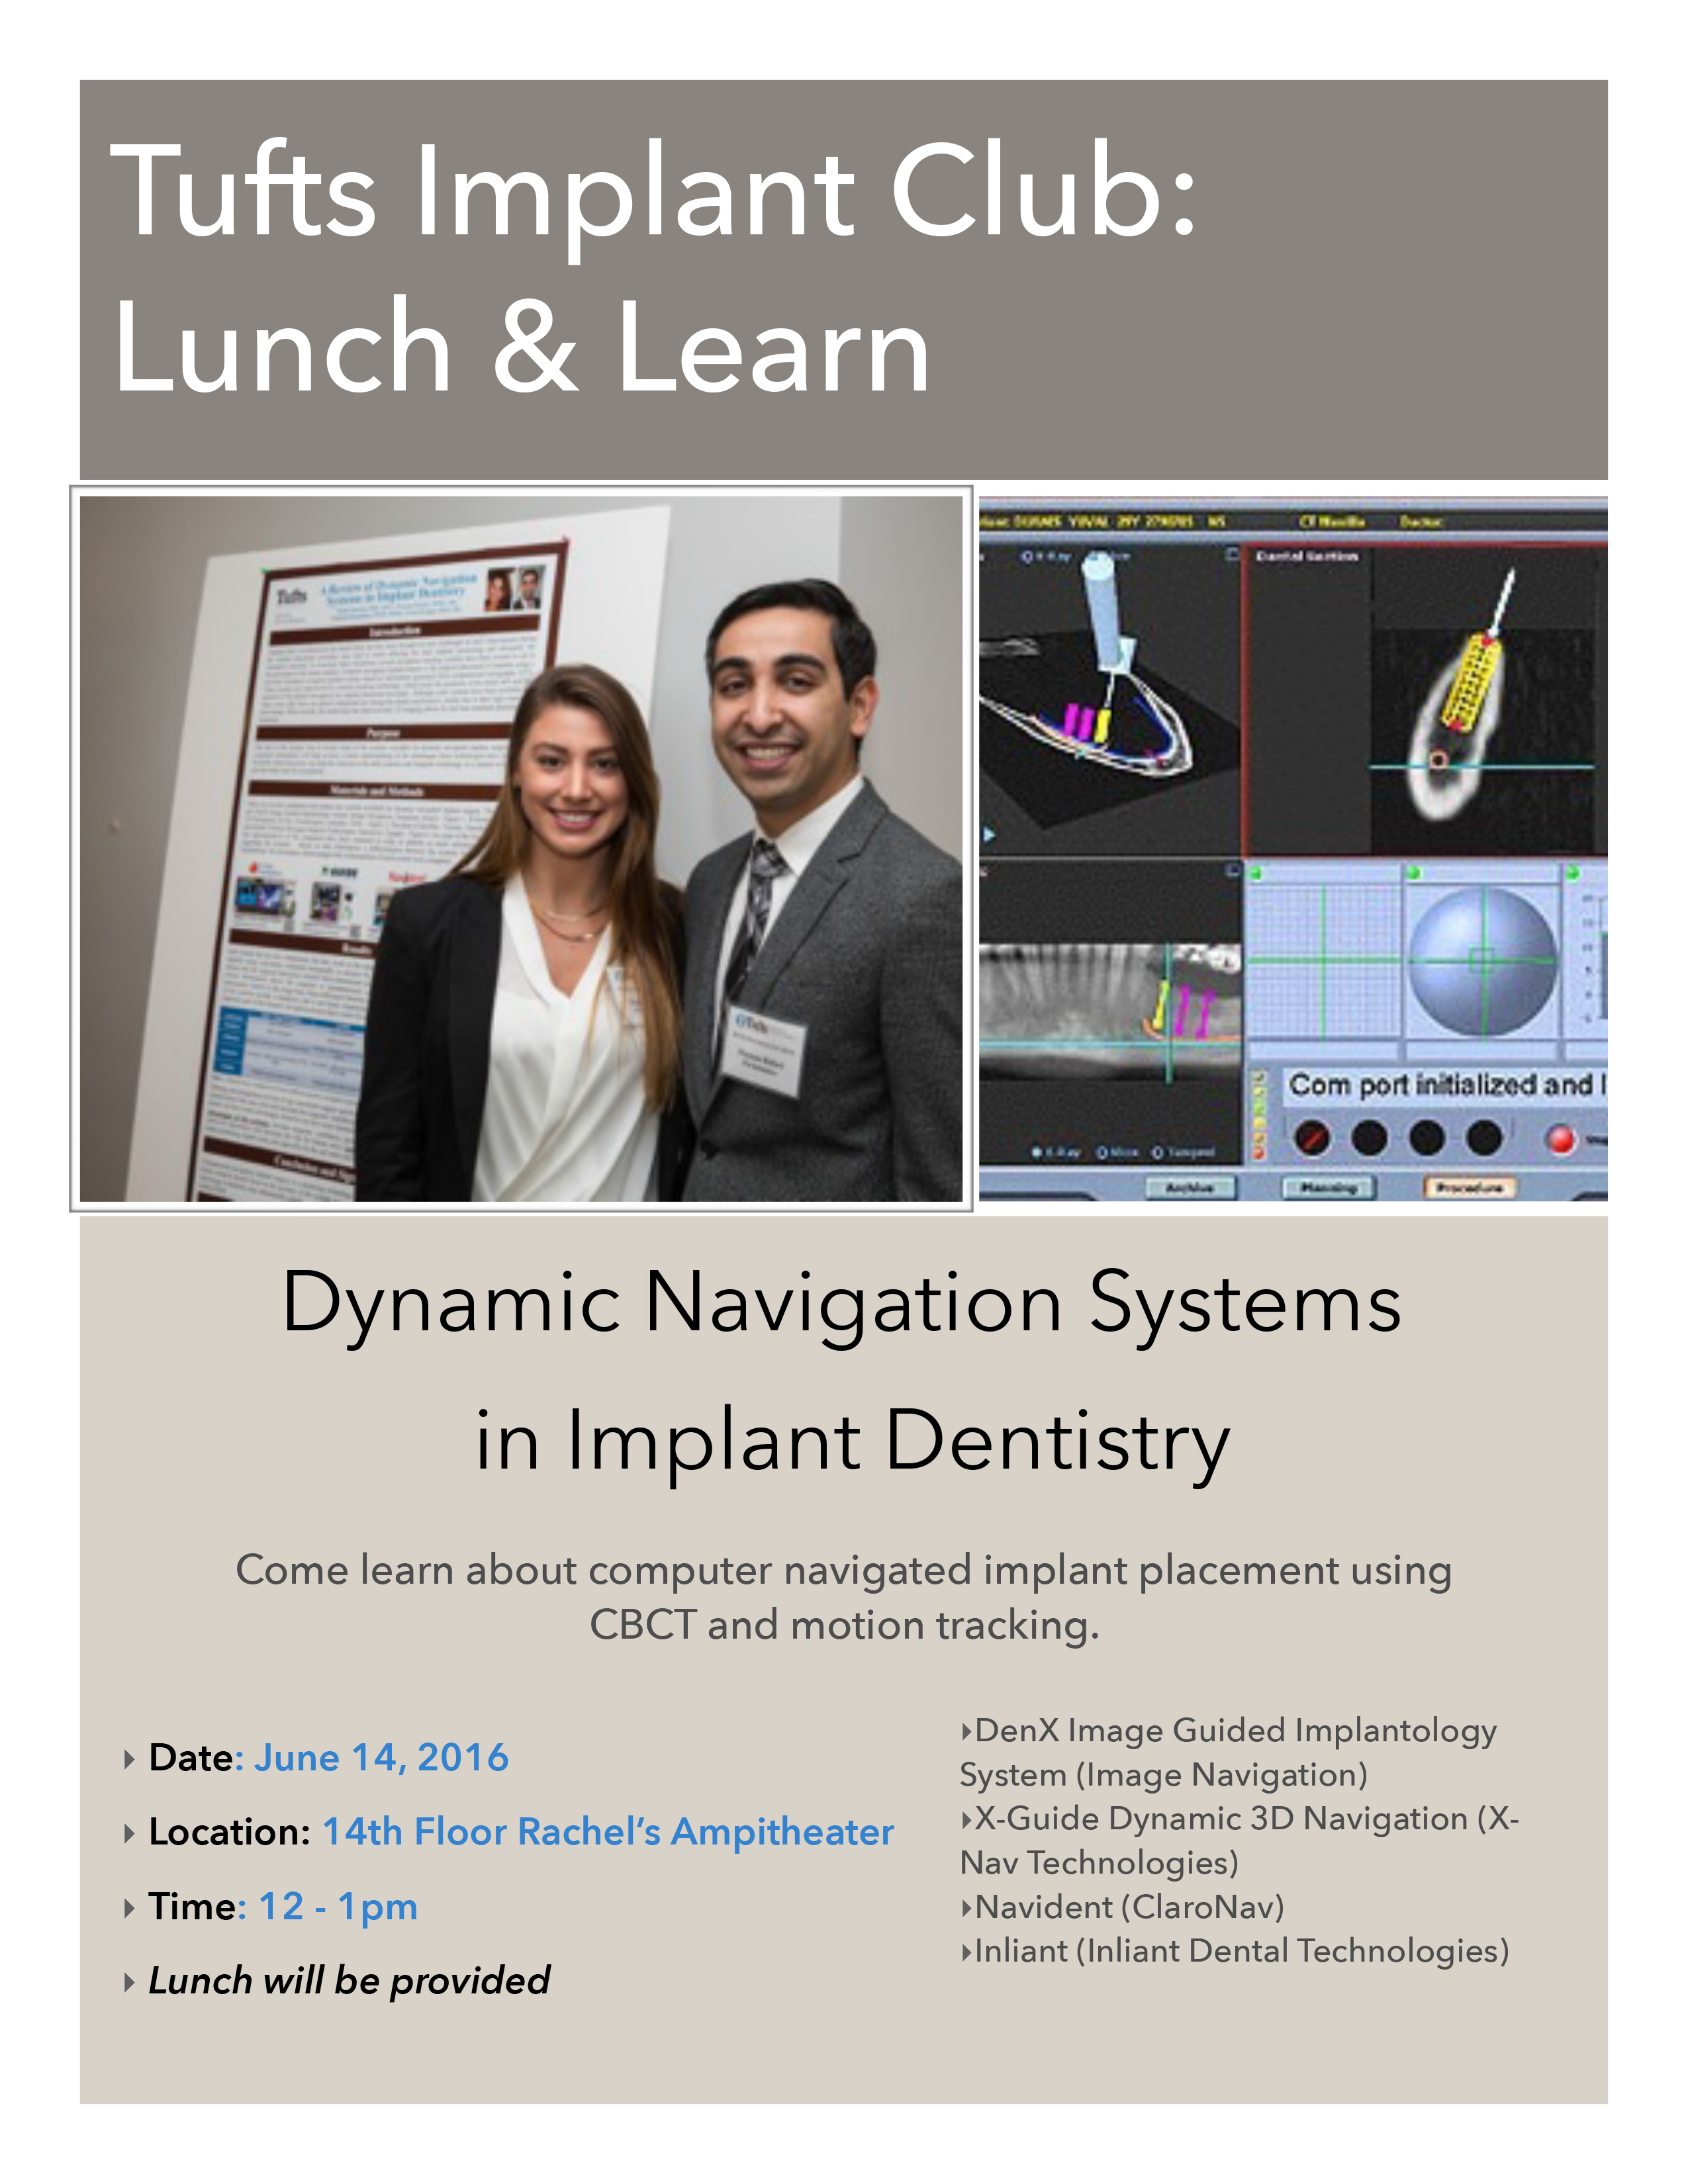 Tufts Implant Club: Lunch & Learn | Dental Central